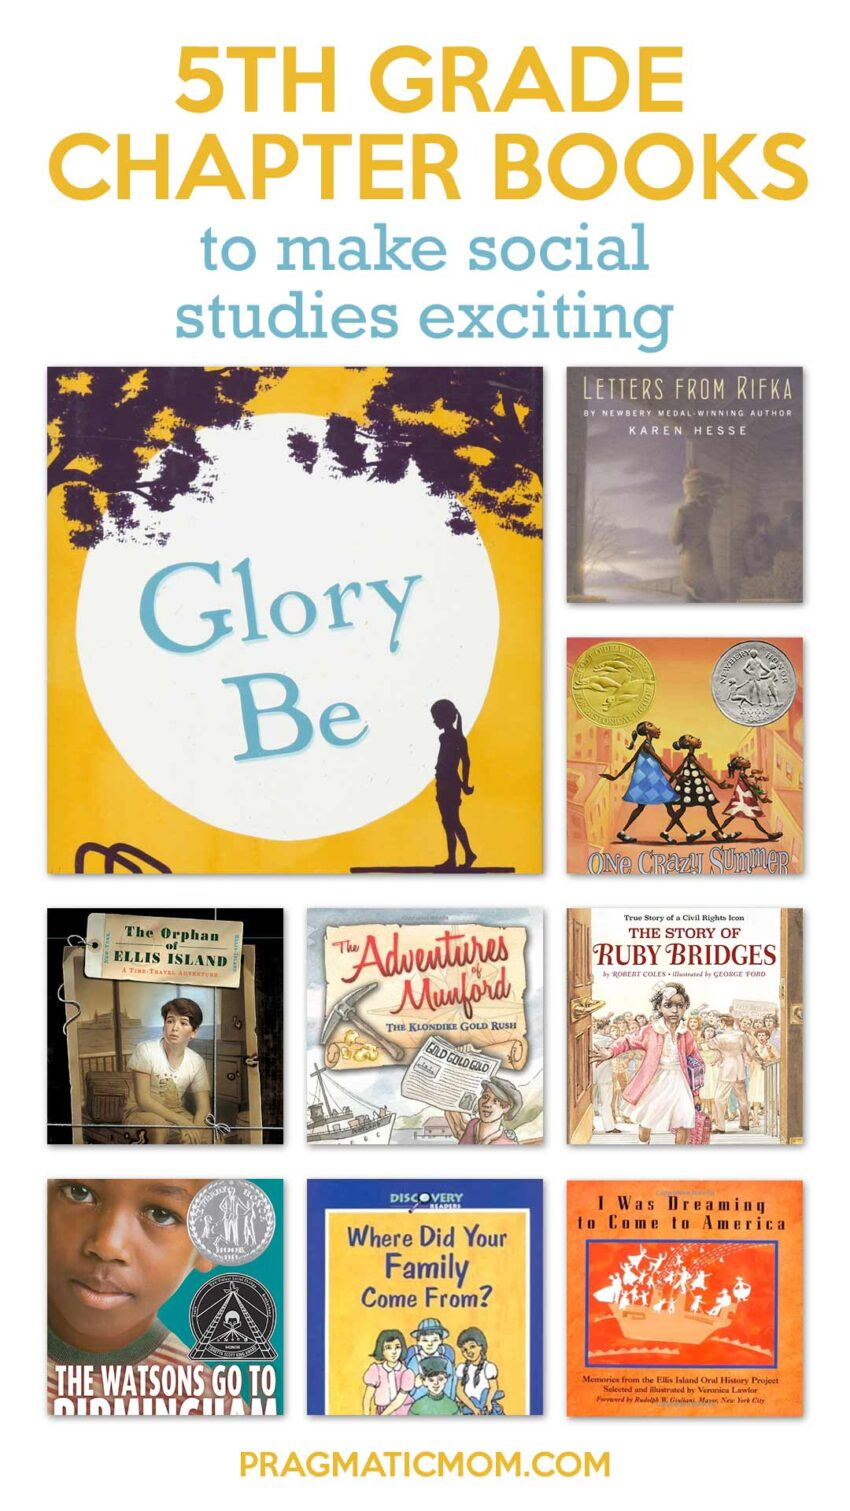 5th Grade Chapter Books to Make Social Studies Exciting